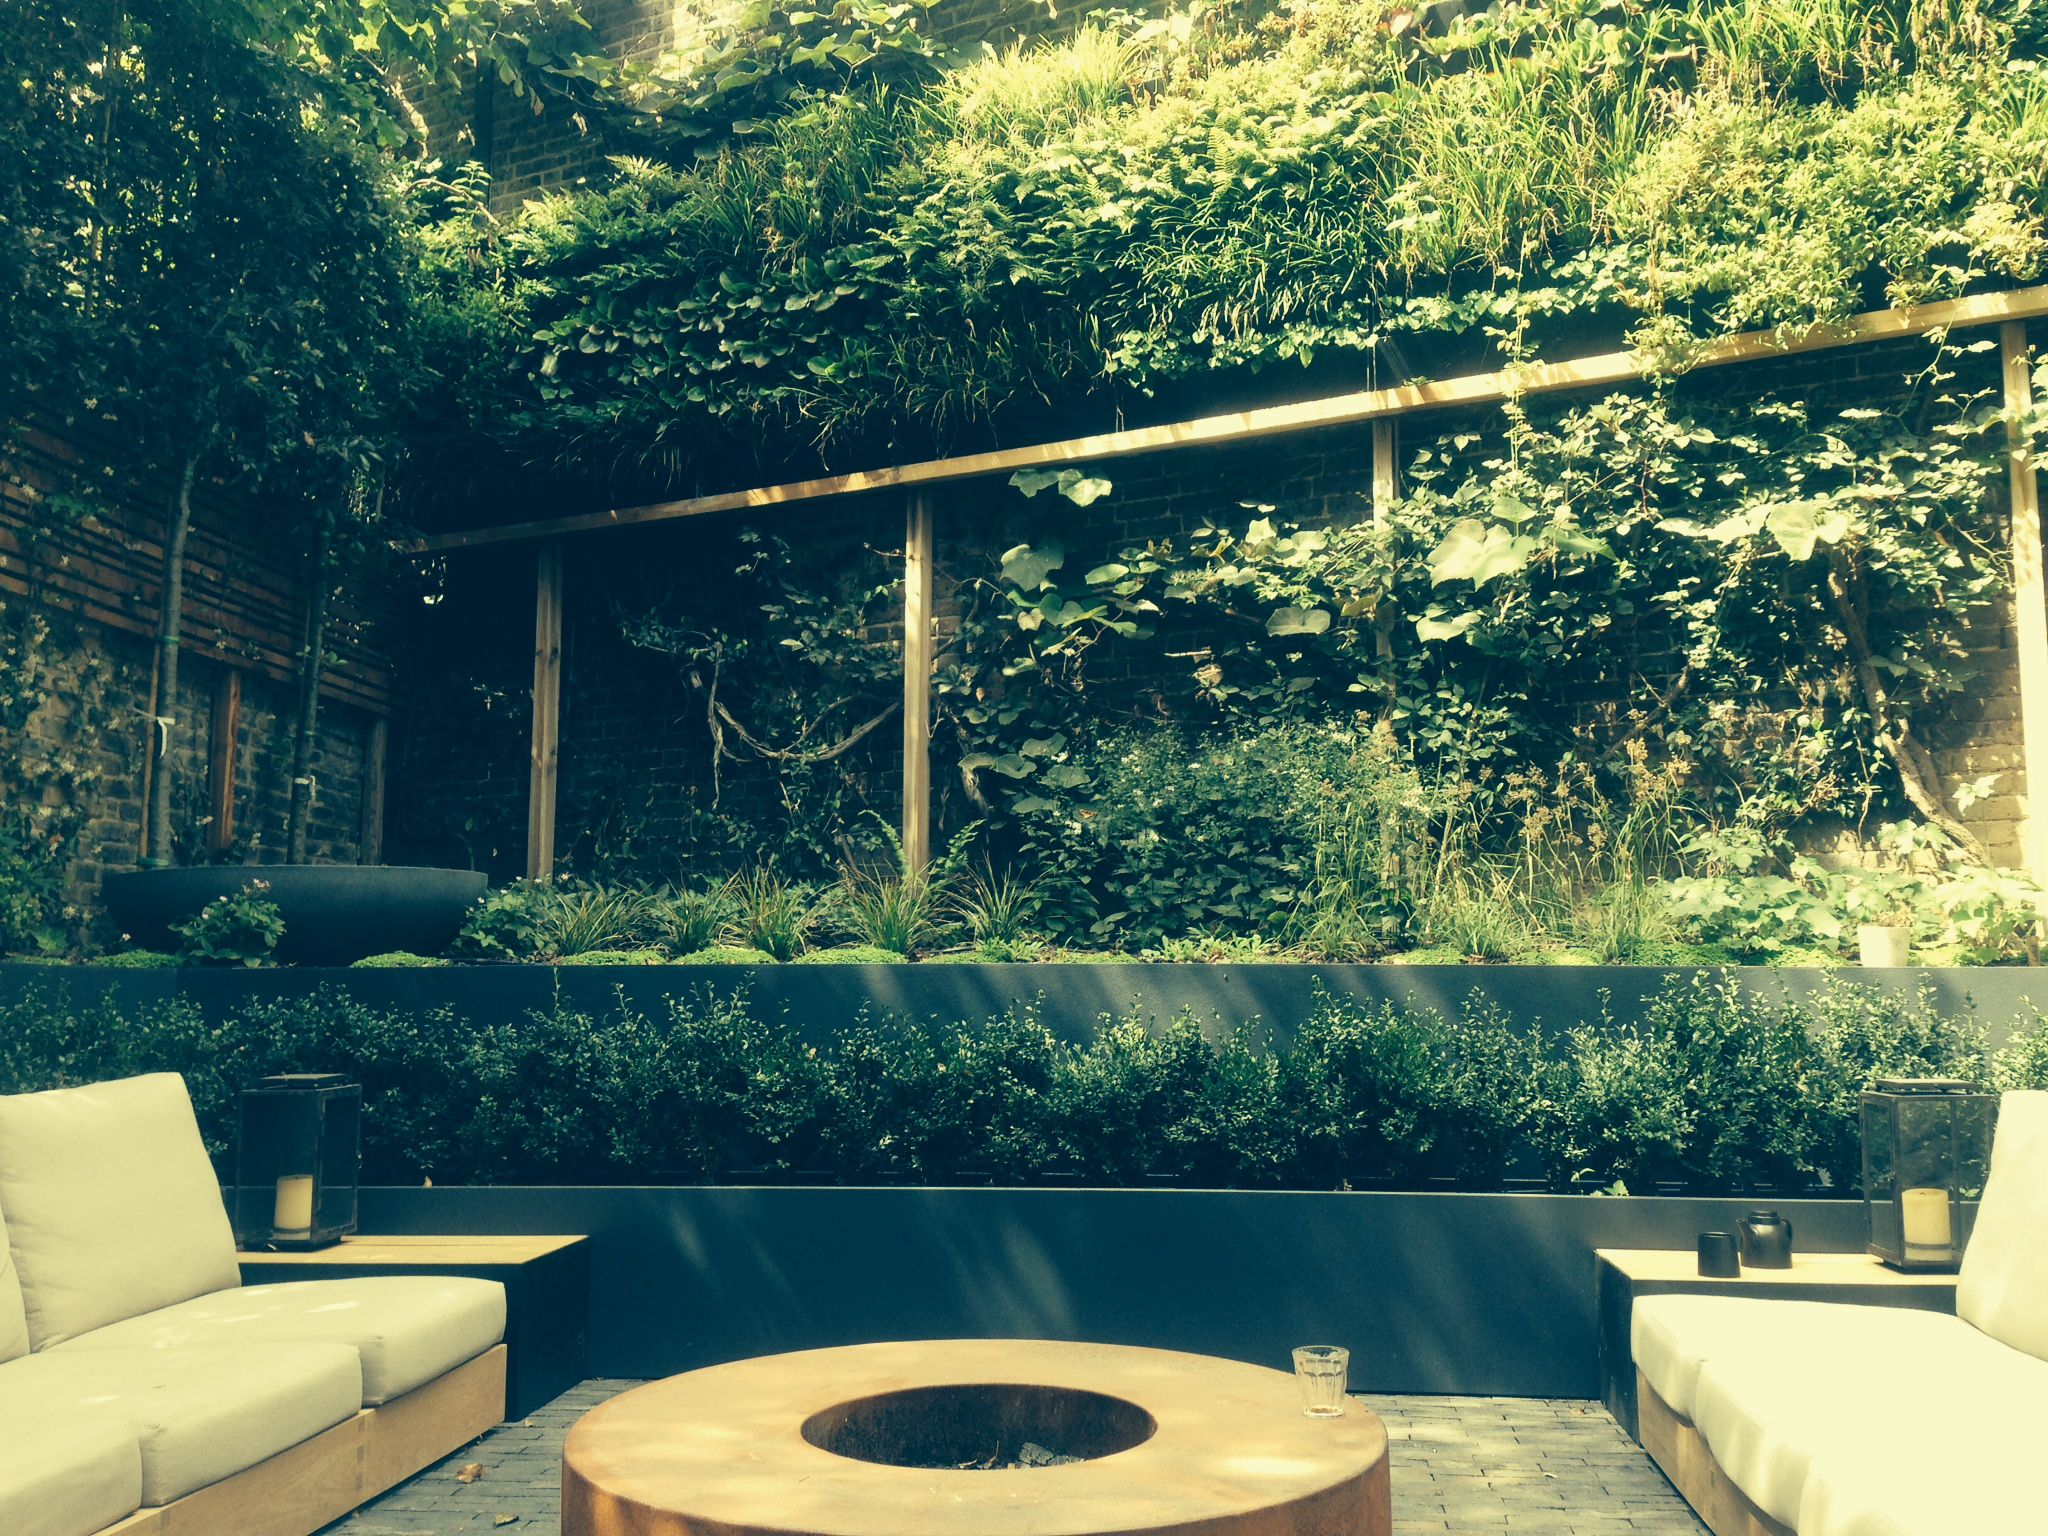 Chic modern garden design in chelsea by declan buckley with steps and - A Declan Buckley Design Built By Natures Balance In Notting Hill With Living Wall